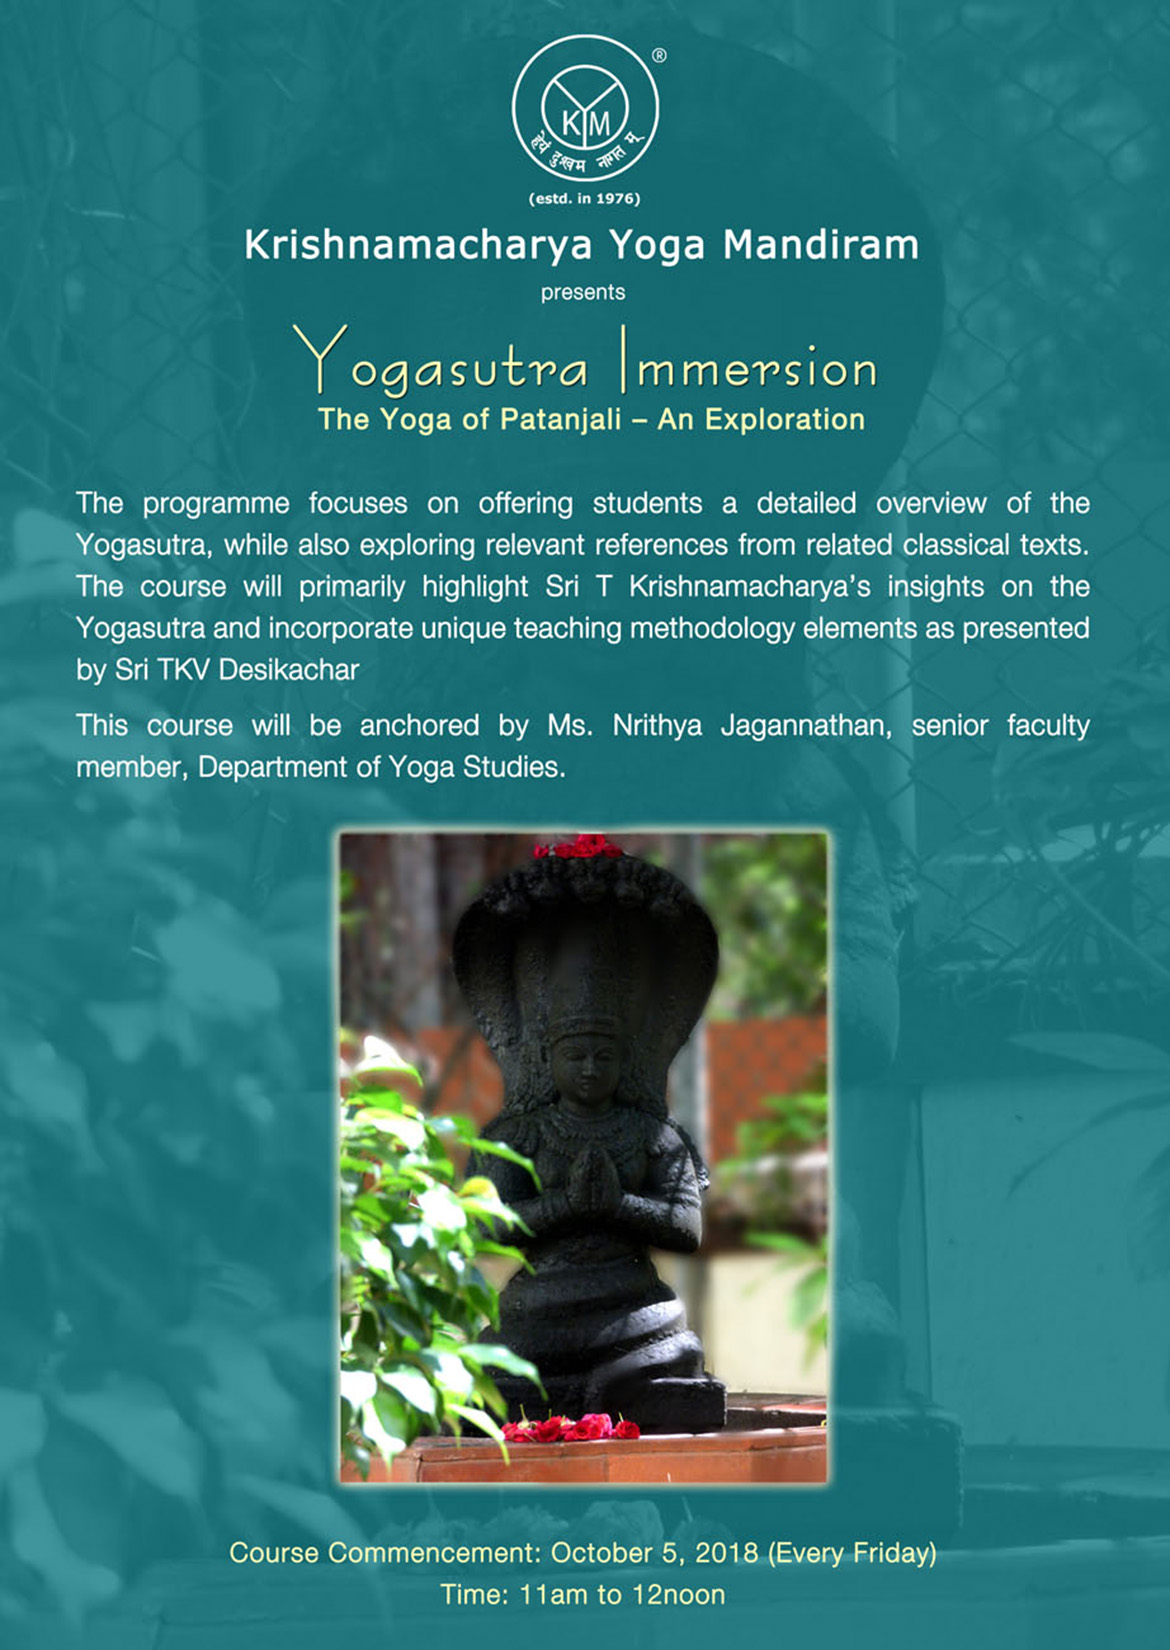 Yogasutra Immersion | The Yoga of Patanjali – An Exploration